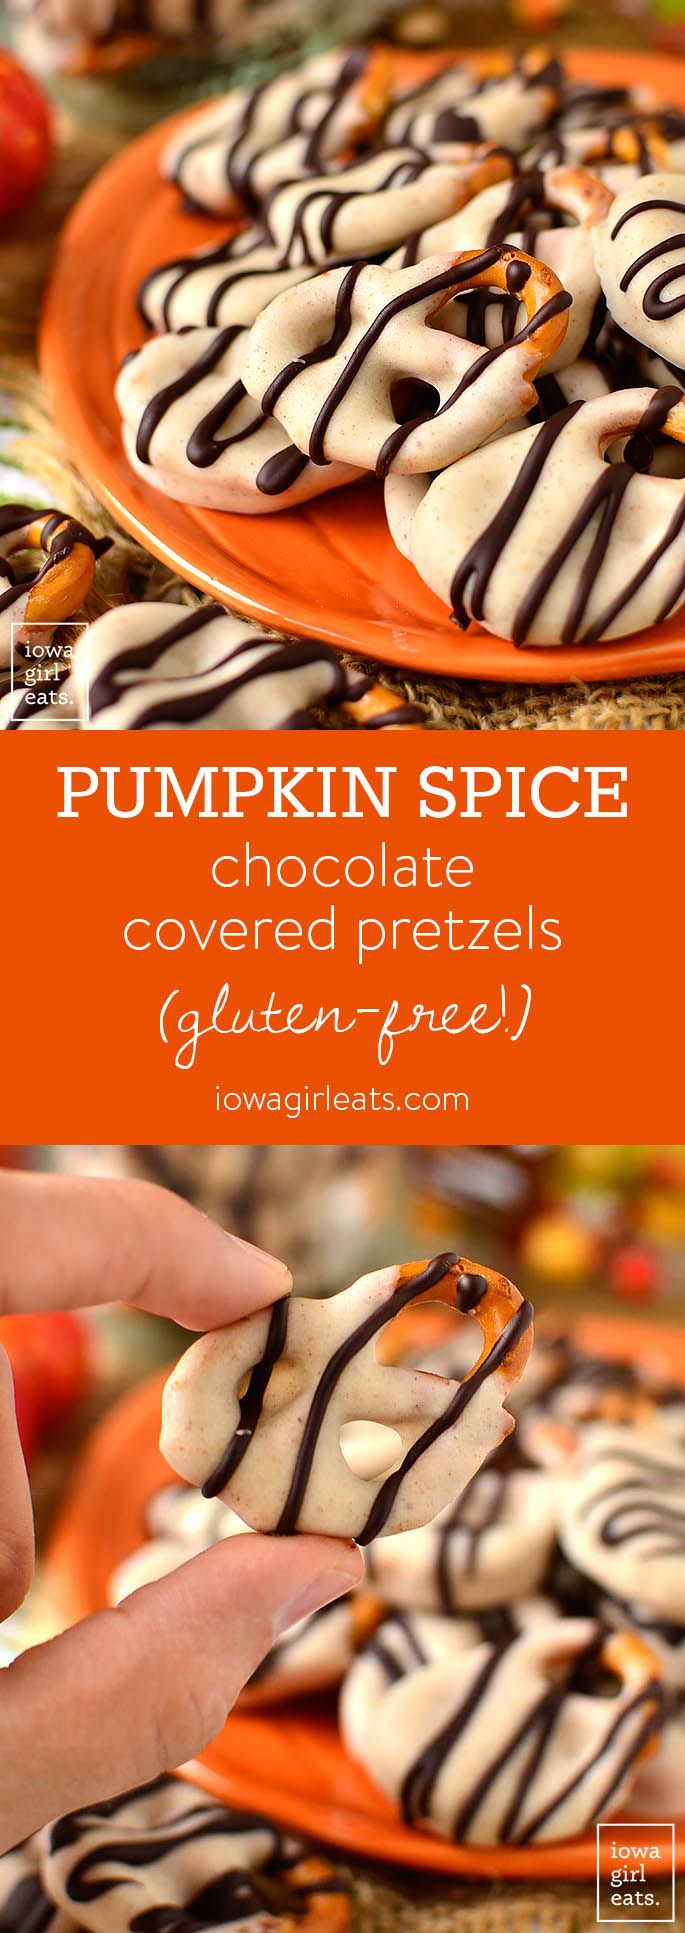 Pumpkin Spice Chocolate Covered Pretzels are absolutely irresistable - dare you to stop at just one! This easygluten-free dessert recipe calls for just 4 ingredients, and 15 minutes. | iowagirleats.com